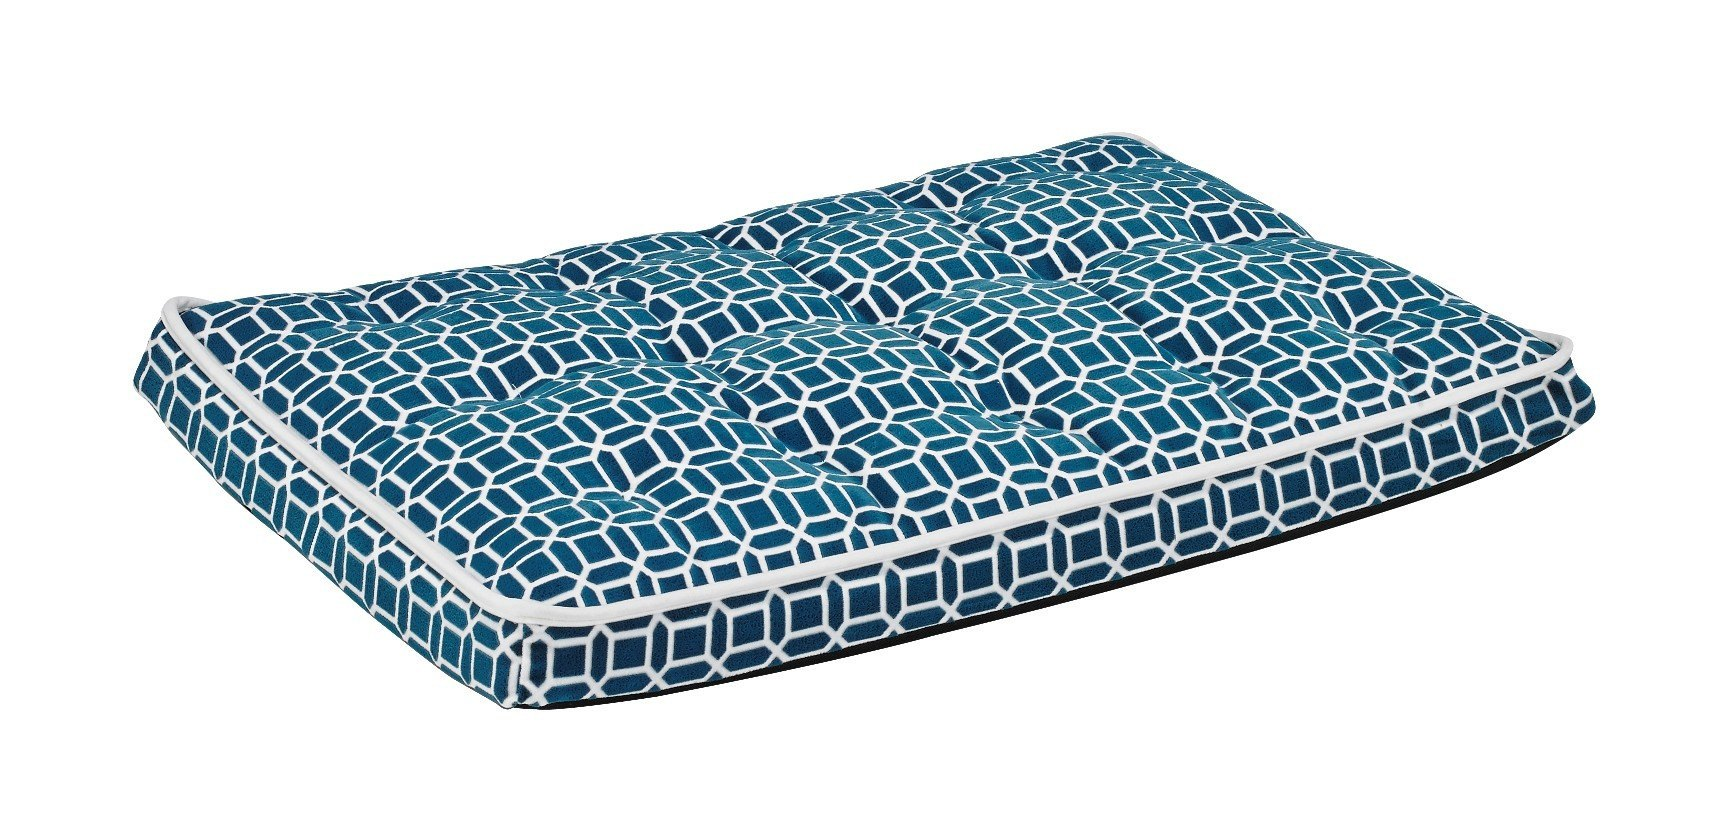 orthopedic shipping pet dog orders supplies free on serta mat overstock mats product over crate